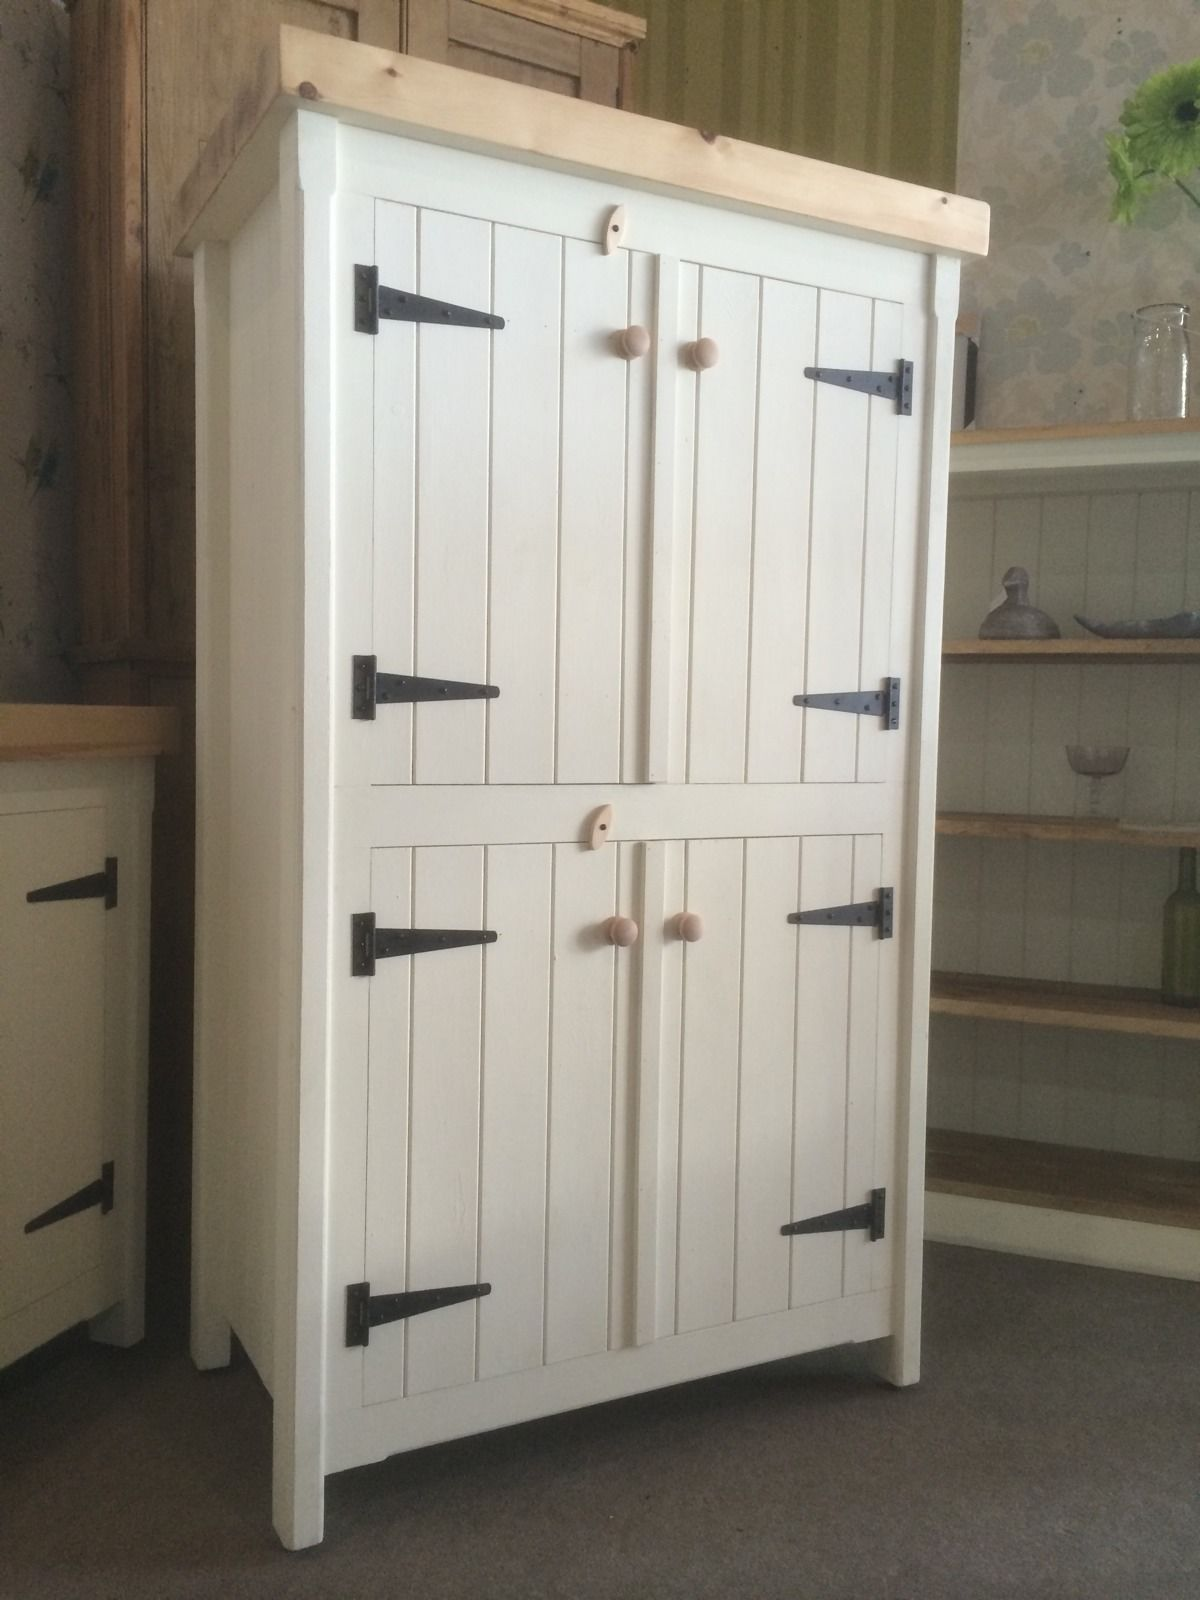 The Best Victorian Pine Cupboard Vintage Storage Larder Large Kitchen Antique Old Rustic Furniture